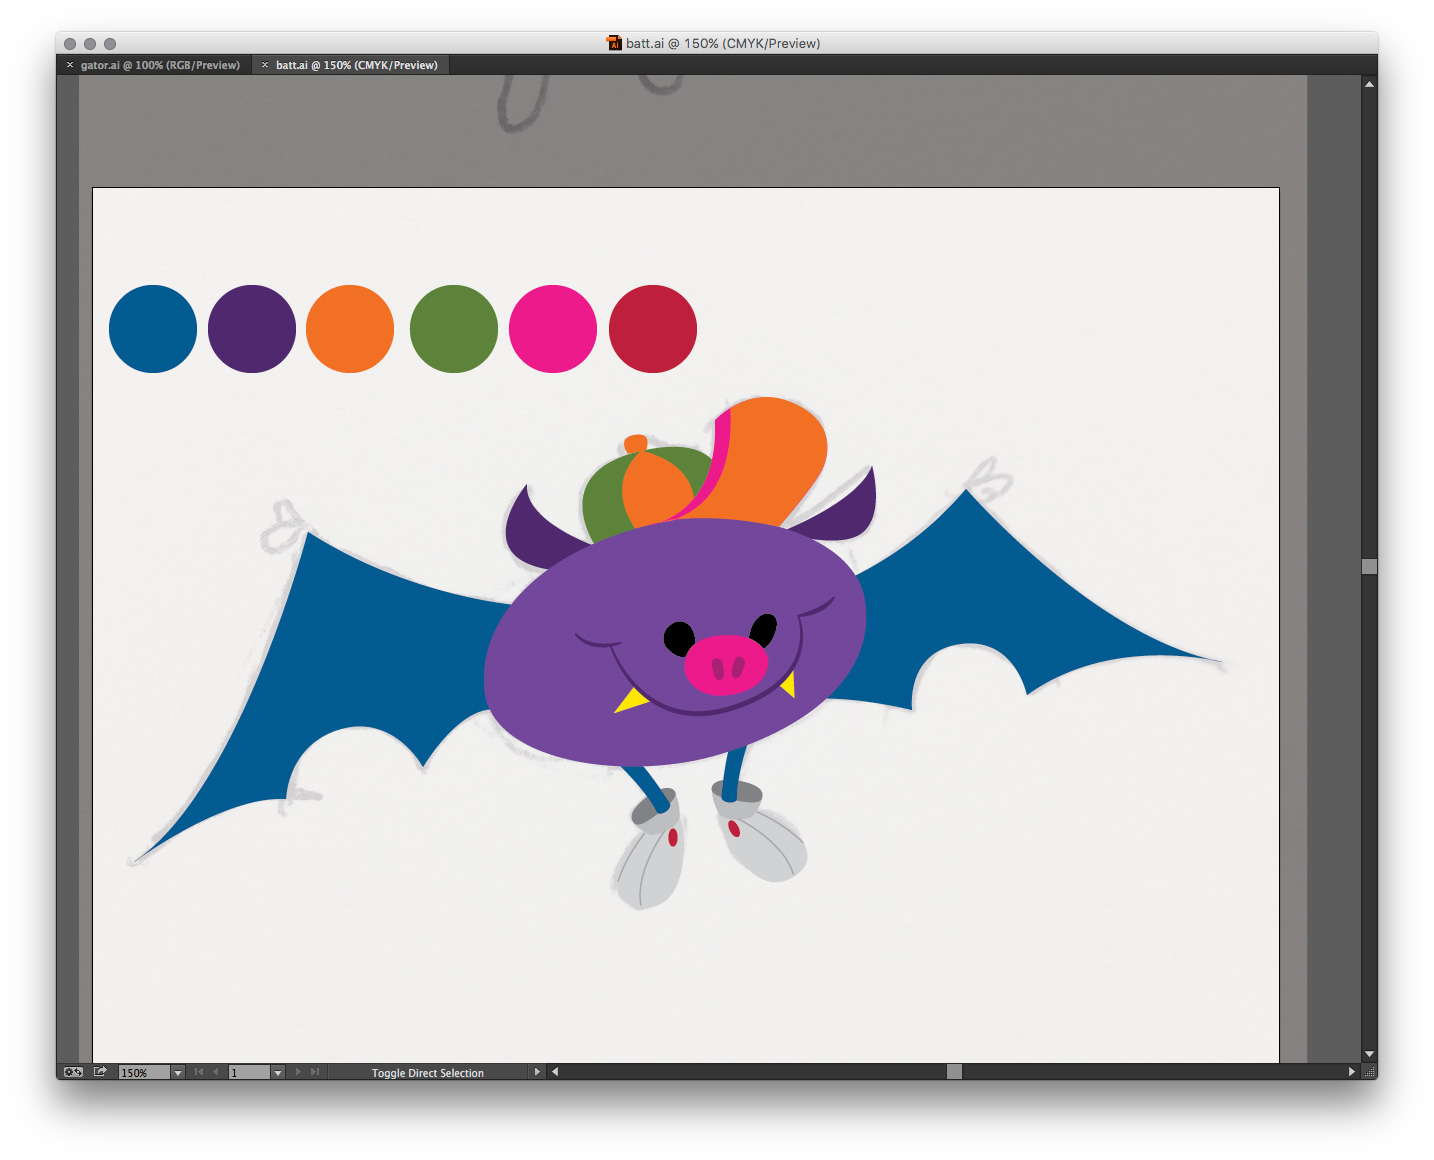 Rough colors applied to the shapes. Ready to take into Photoshop.